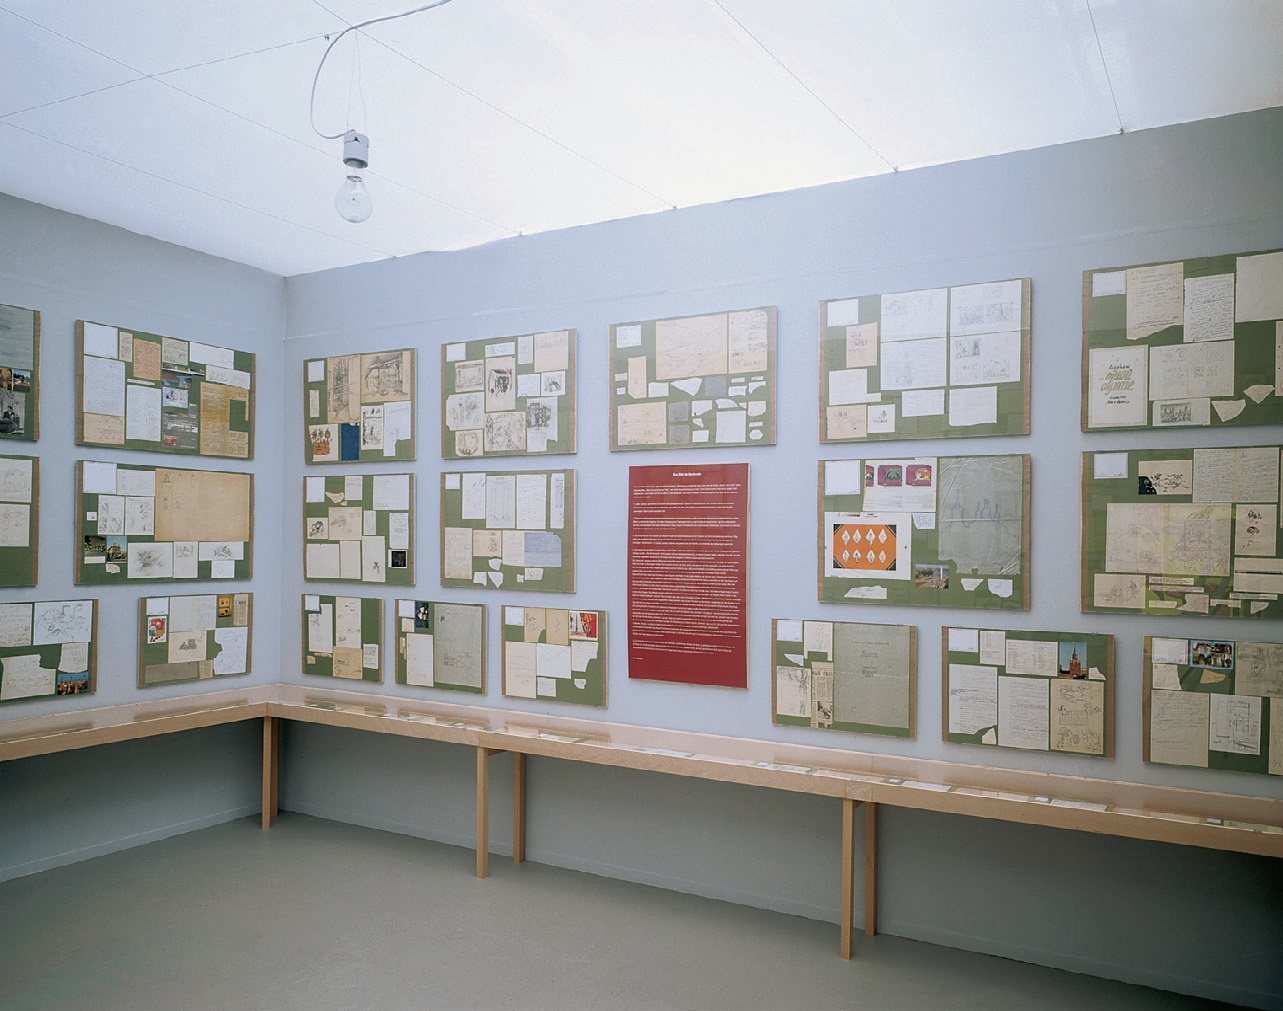 View-of-installation-Kunsthalle-Düsseldorf-2000-Photo-by-Horst-Kolberg.jpg